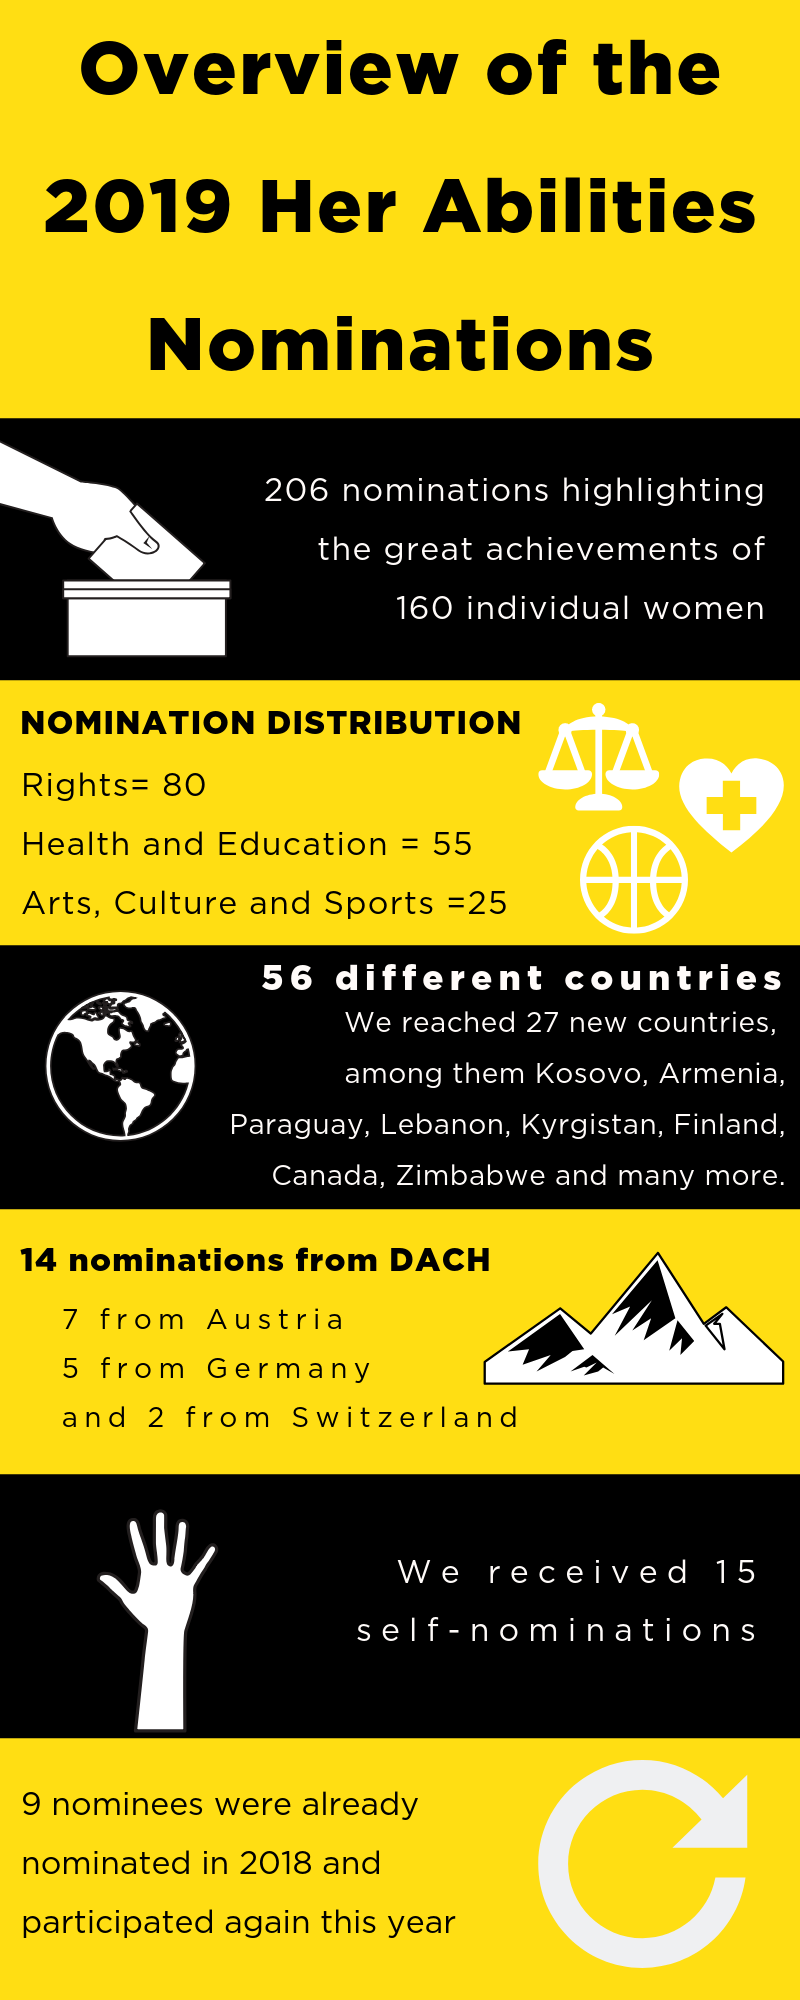 Overview of the 2019 Her Abilities Nominations  206 nominations highlighting the great achievements of 160 individual women    distribution on the 3 categories:  80 nominations = RIGHTS 55 nominations = HEALTH & EDUCATION 25 nominations =  ARTS; CULTURE & SPORTS  Nominations from 56 different countries.  We reached 27 new countries, among them Kosovo, Armenia, Paraguay, Lebanon, Kyrgistan, Finland, Canada, Zimbabwe and many more.     14 nominations from DACH  7 from Austria – 5 from Germany and 2 from Switzerland.    We received 15 self-nominations   9 nominees were already nominated in 2018 and participated again this year